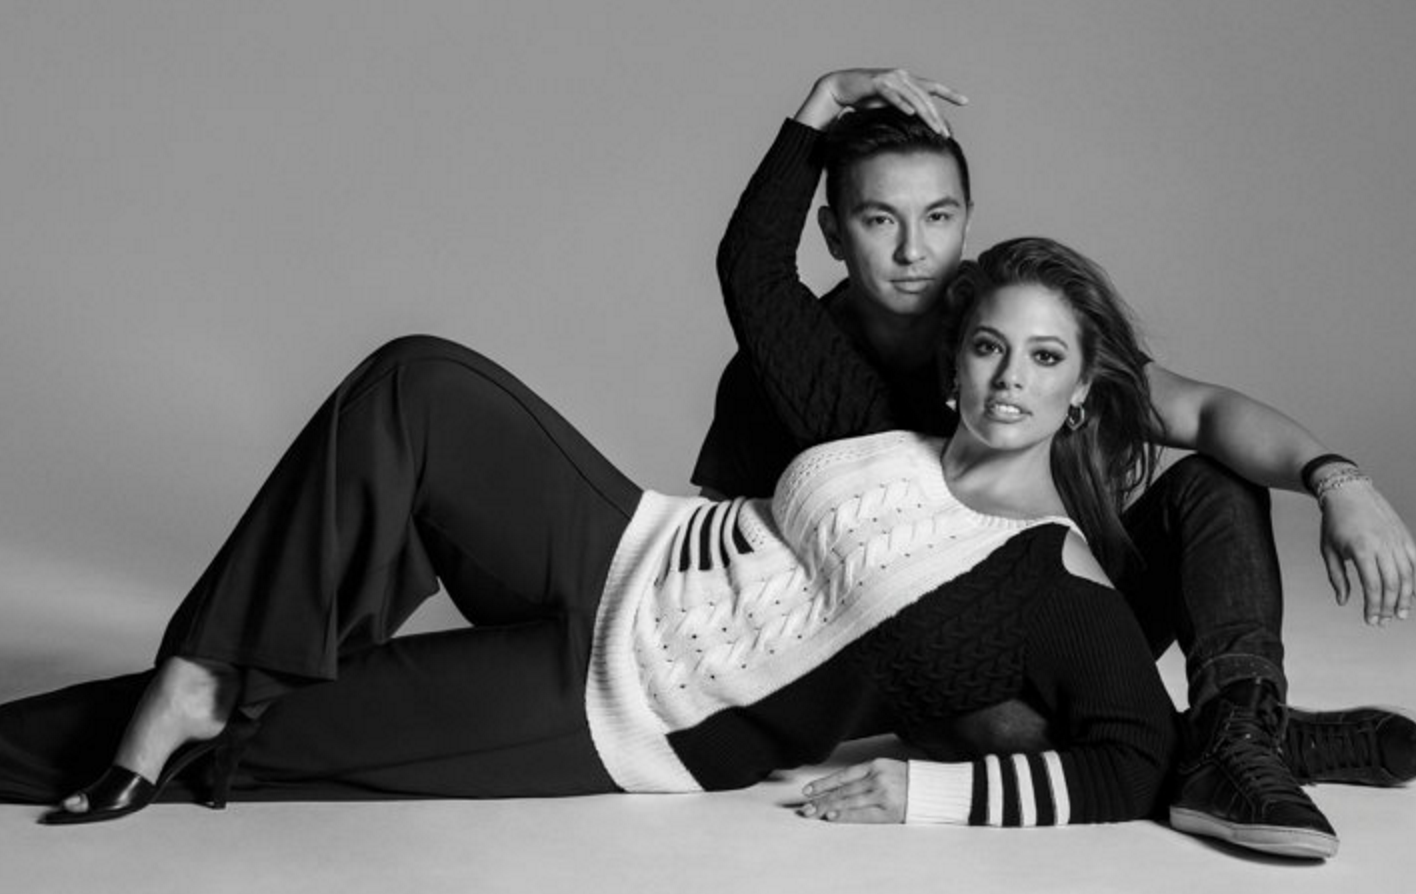 Here are our favorite pieces from the Prabal Gurung x Lane Bryant collection